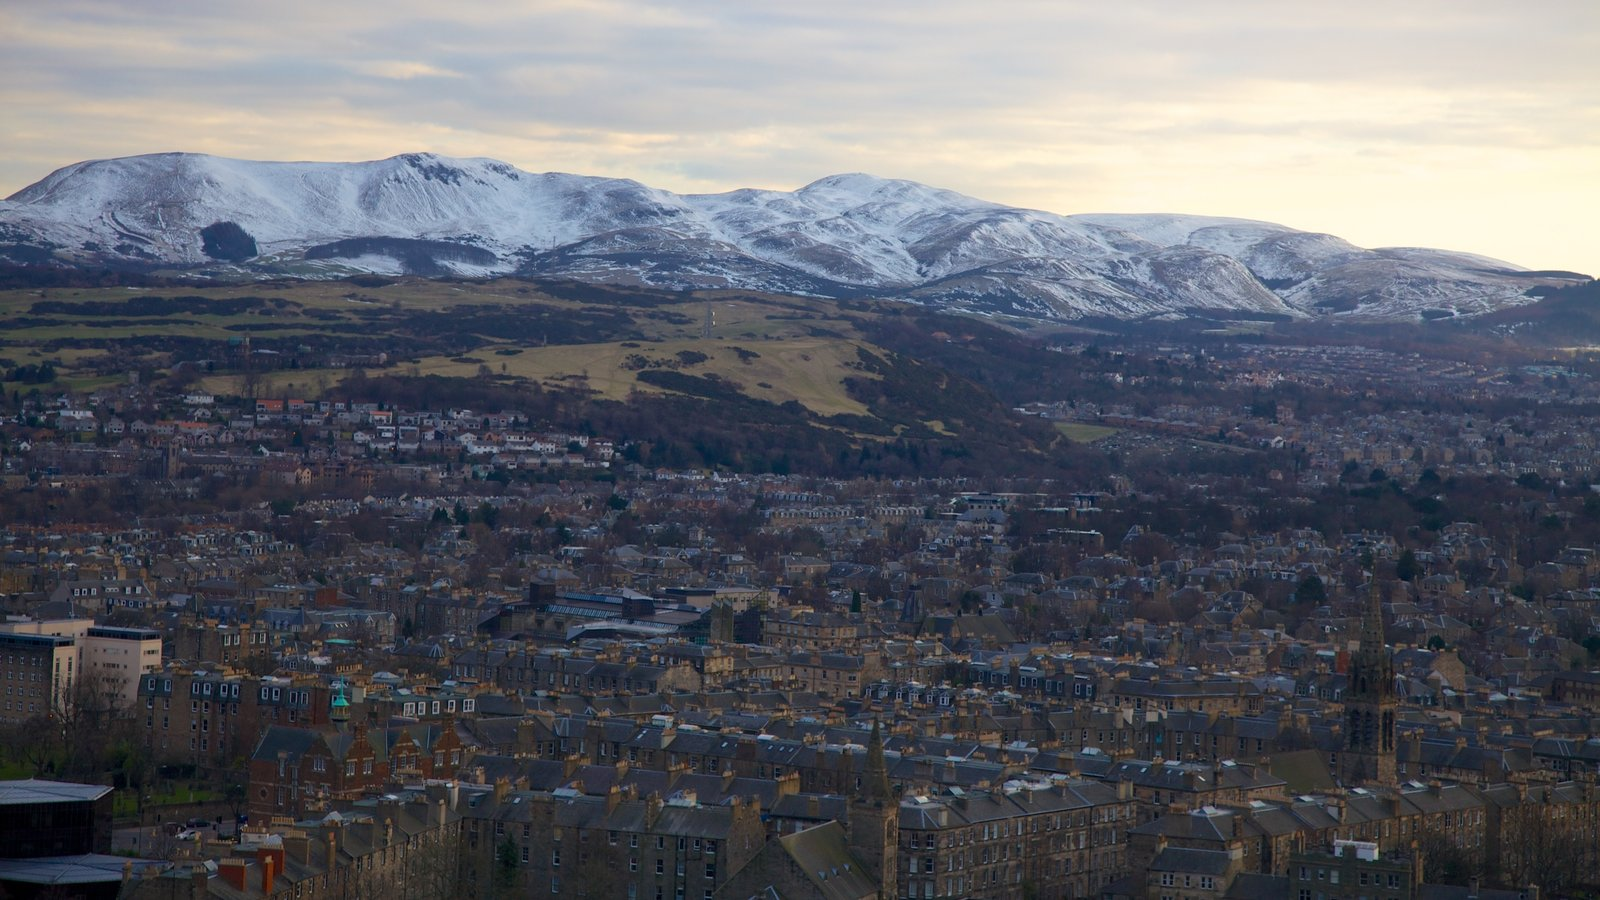 Arthur\\\'s Seat which includes mountains, a city and snow